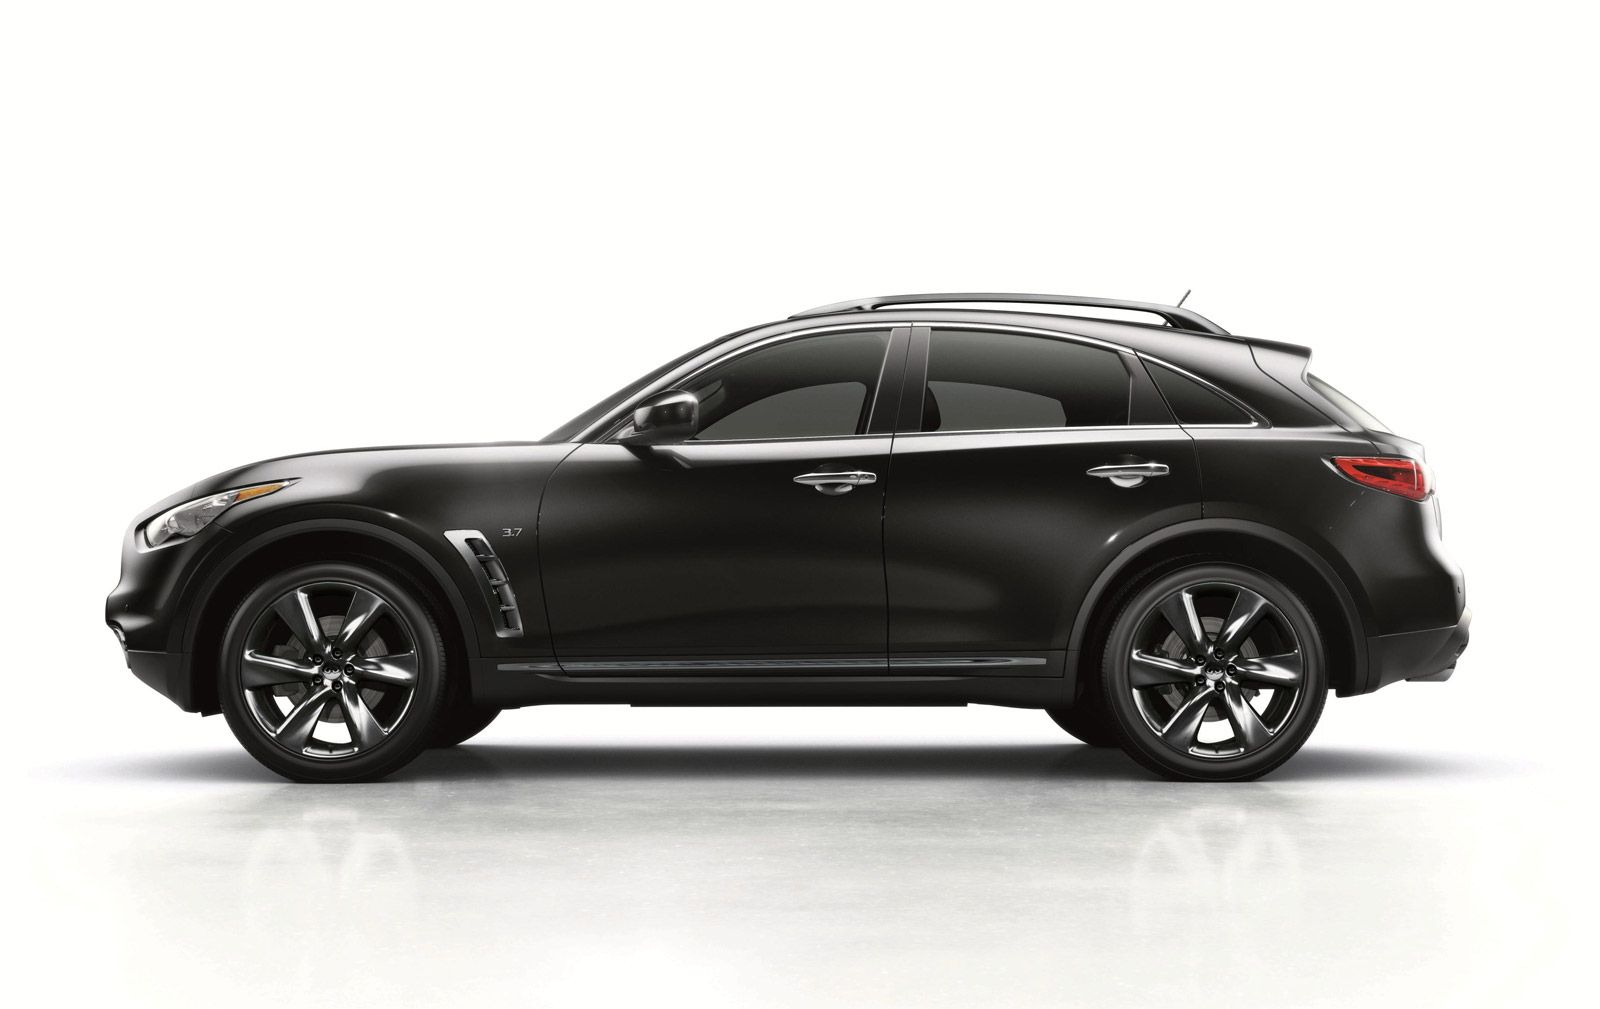 2015 Infiniti Qx50 Priced From 35 995 2015 Qx70 From 46 845